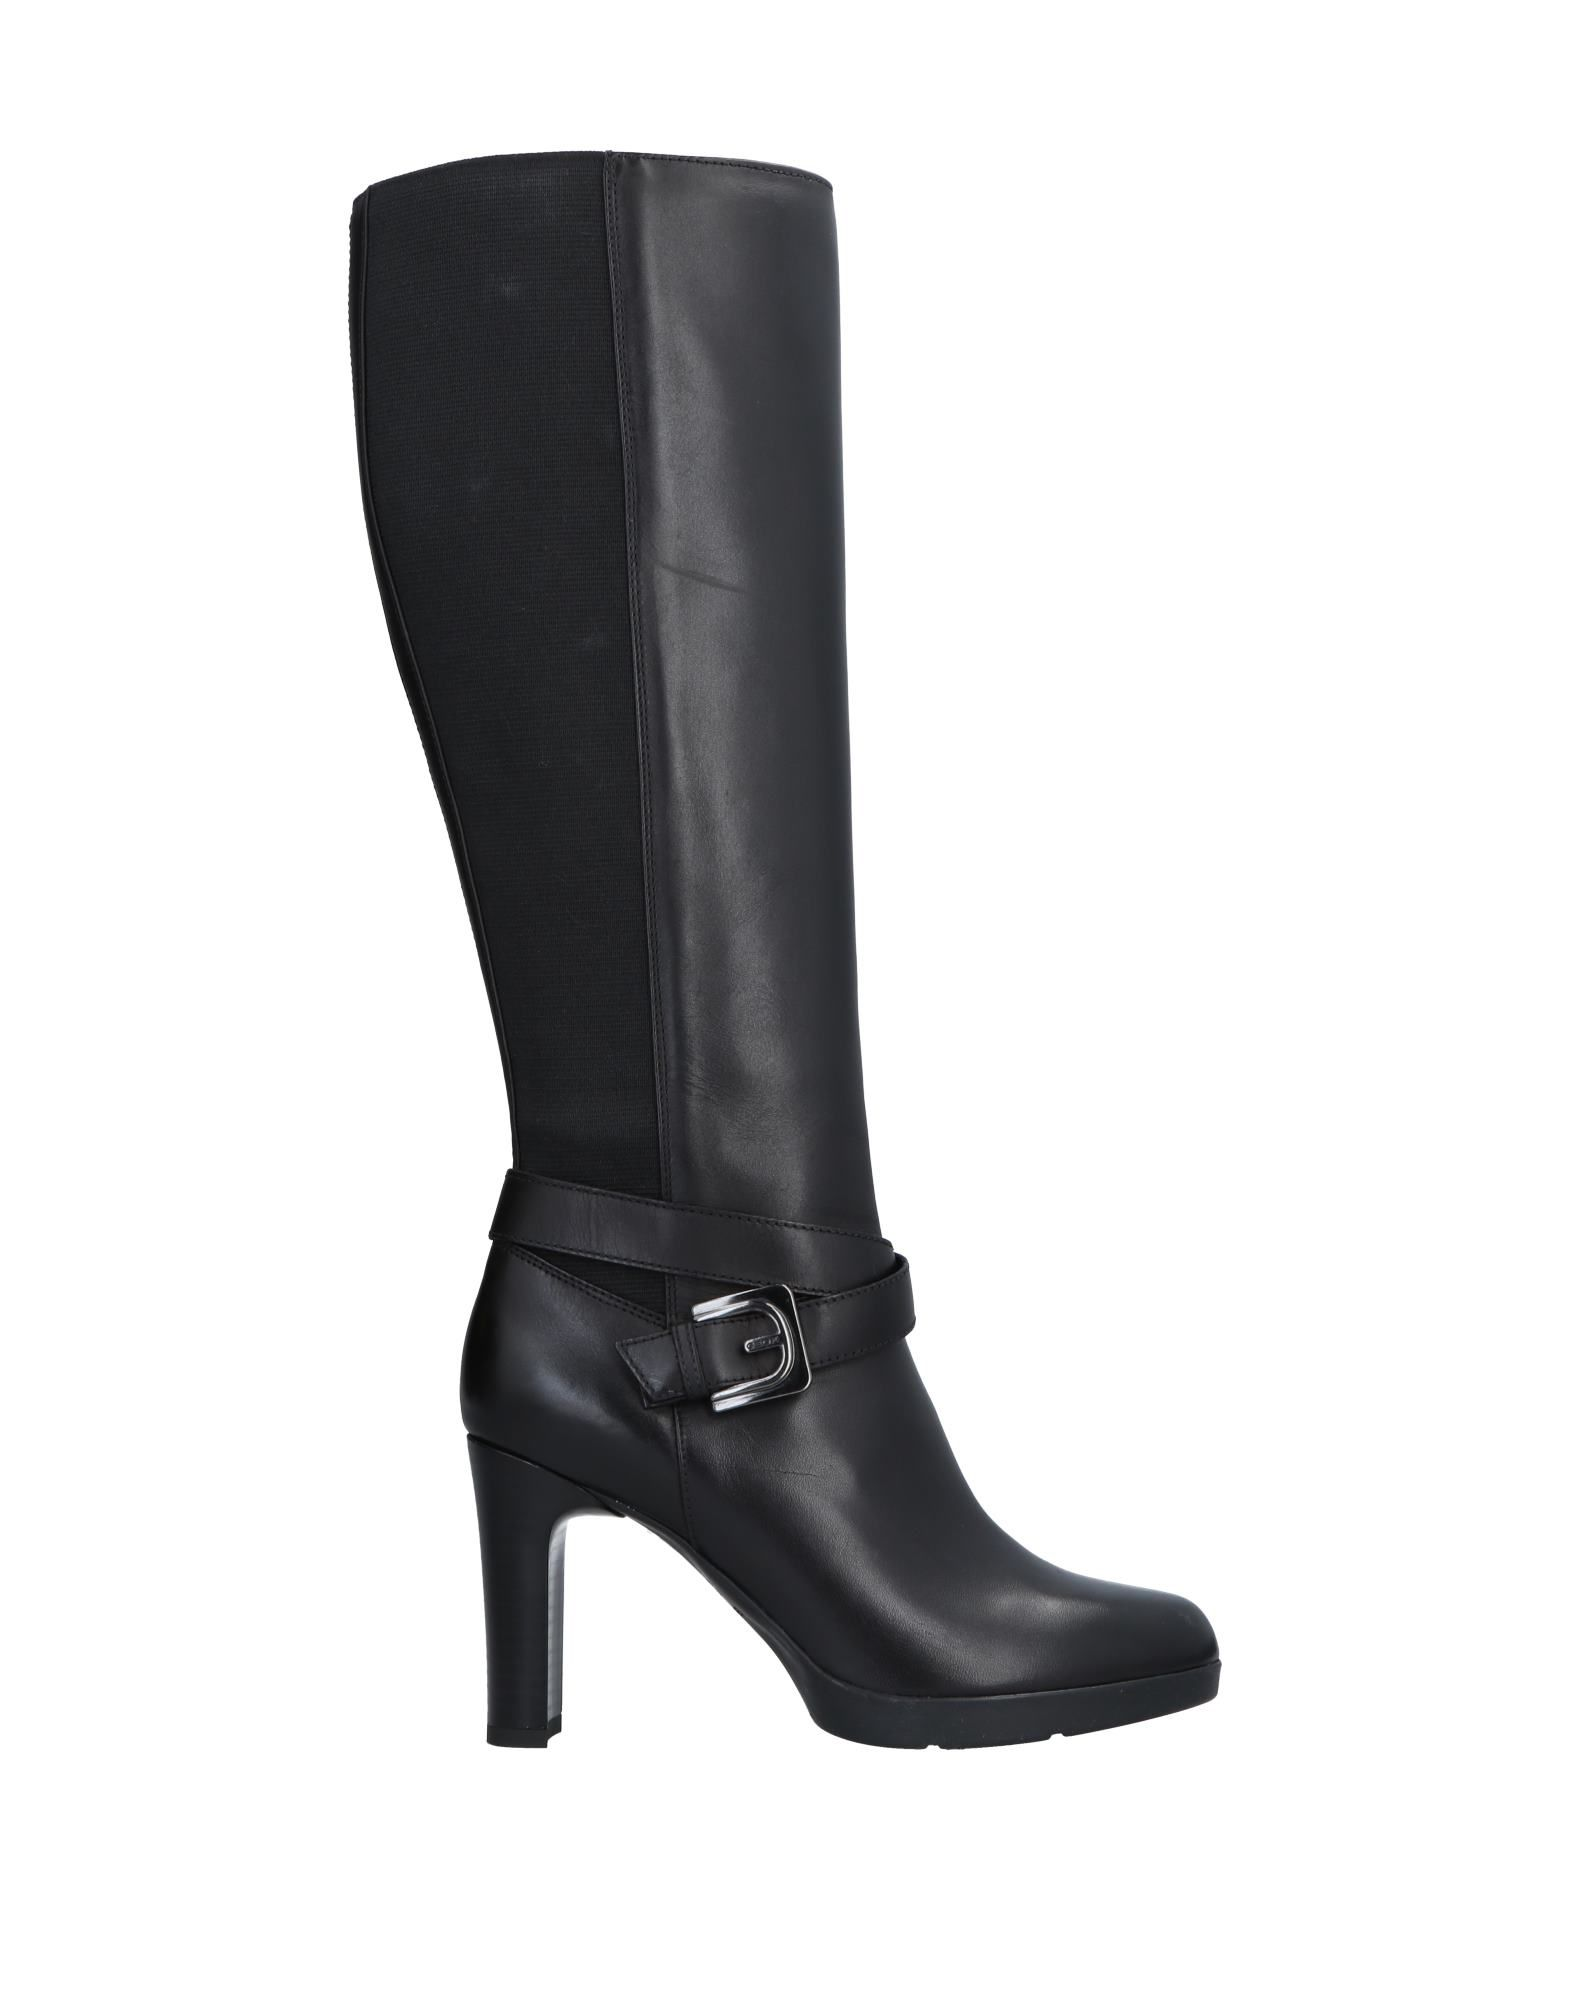 GEOX Buckled Knee-Length Boots in Black